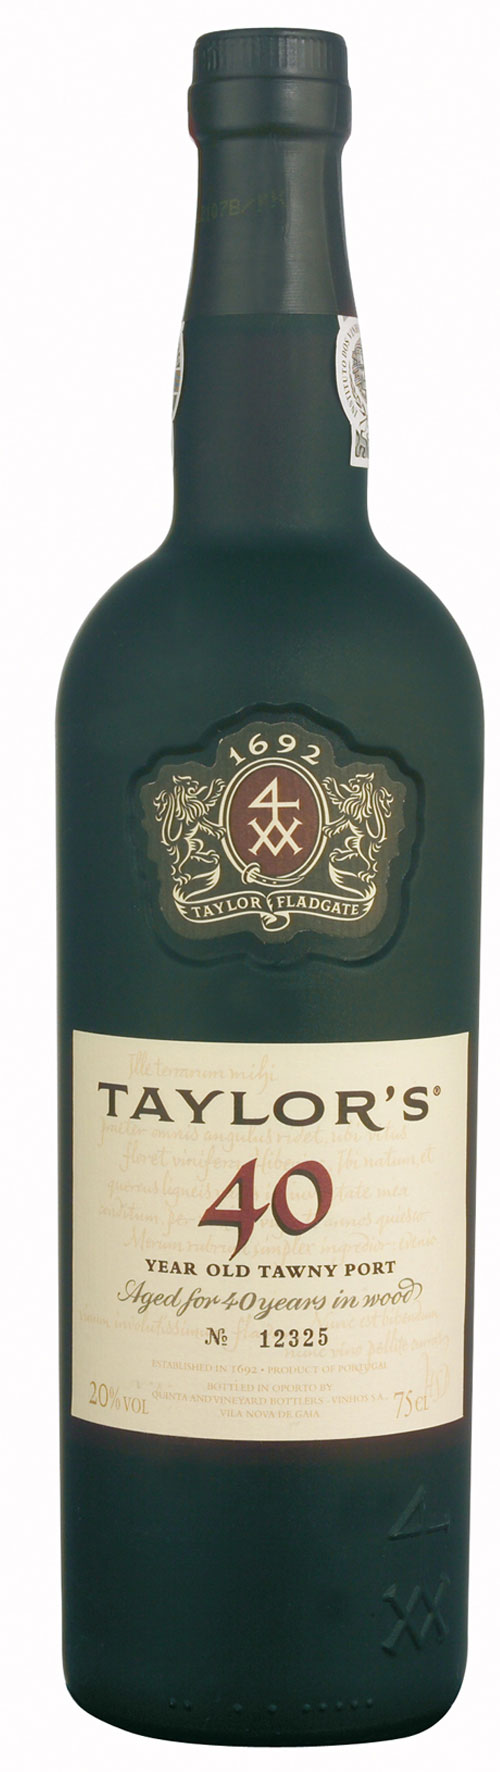 Portwein Taylor´s Tawny 40 Years Port